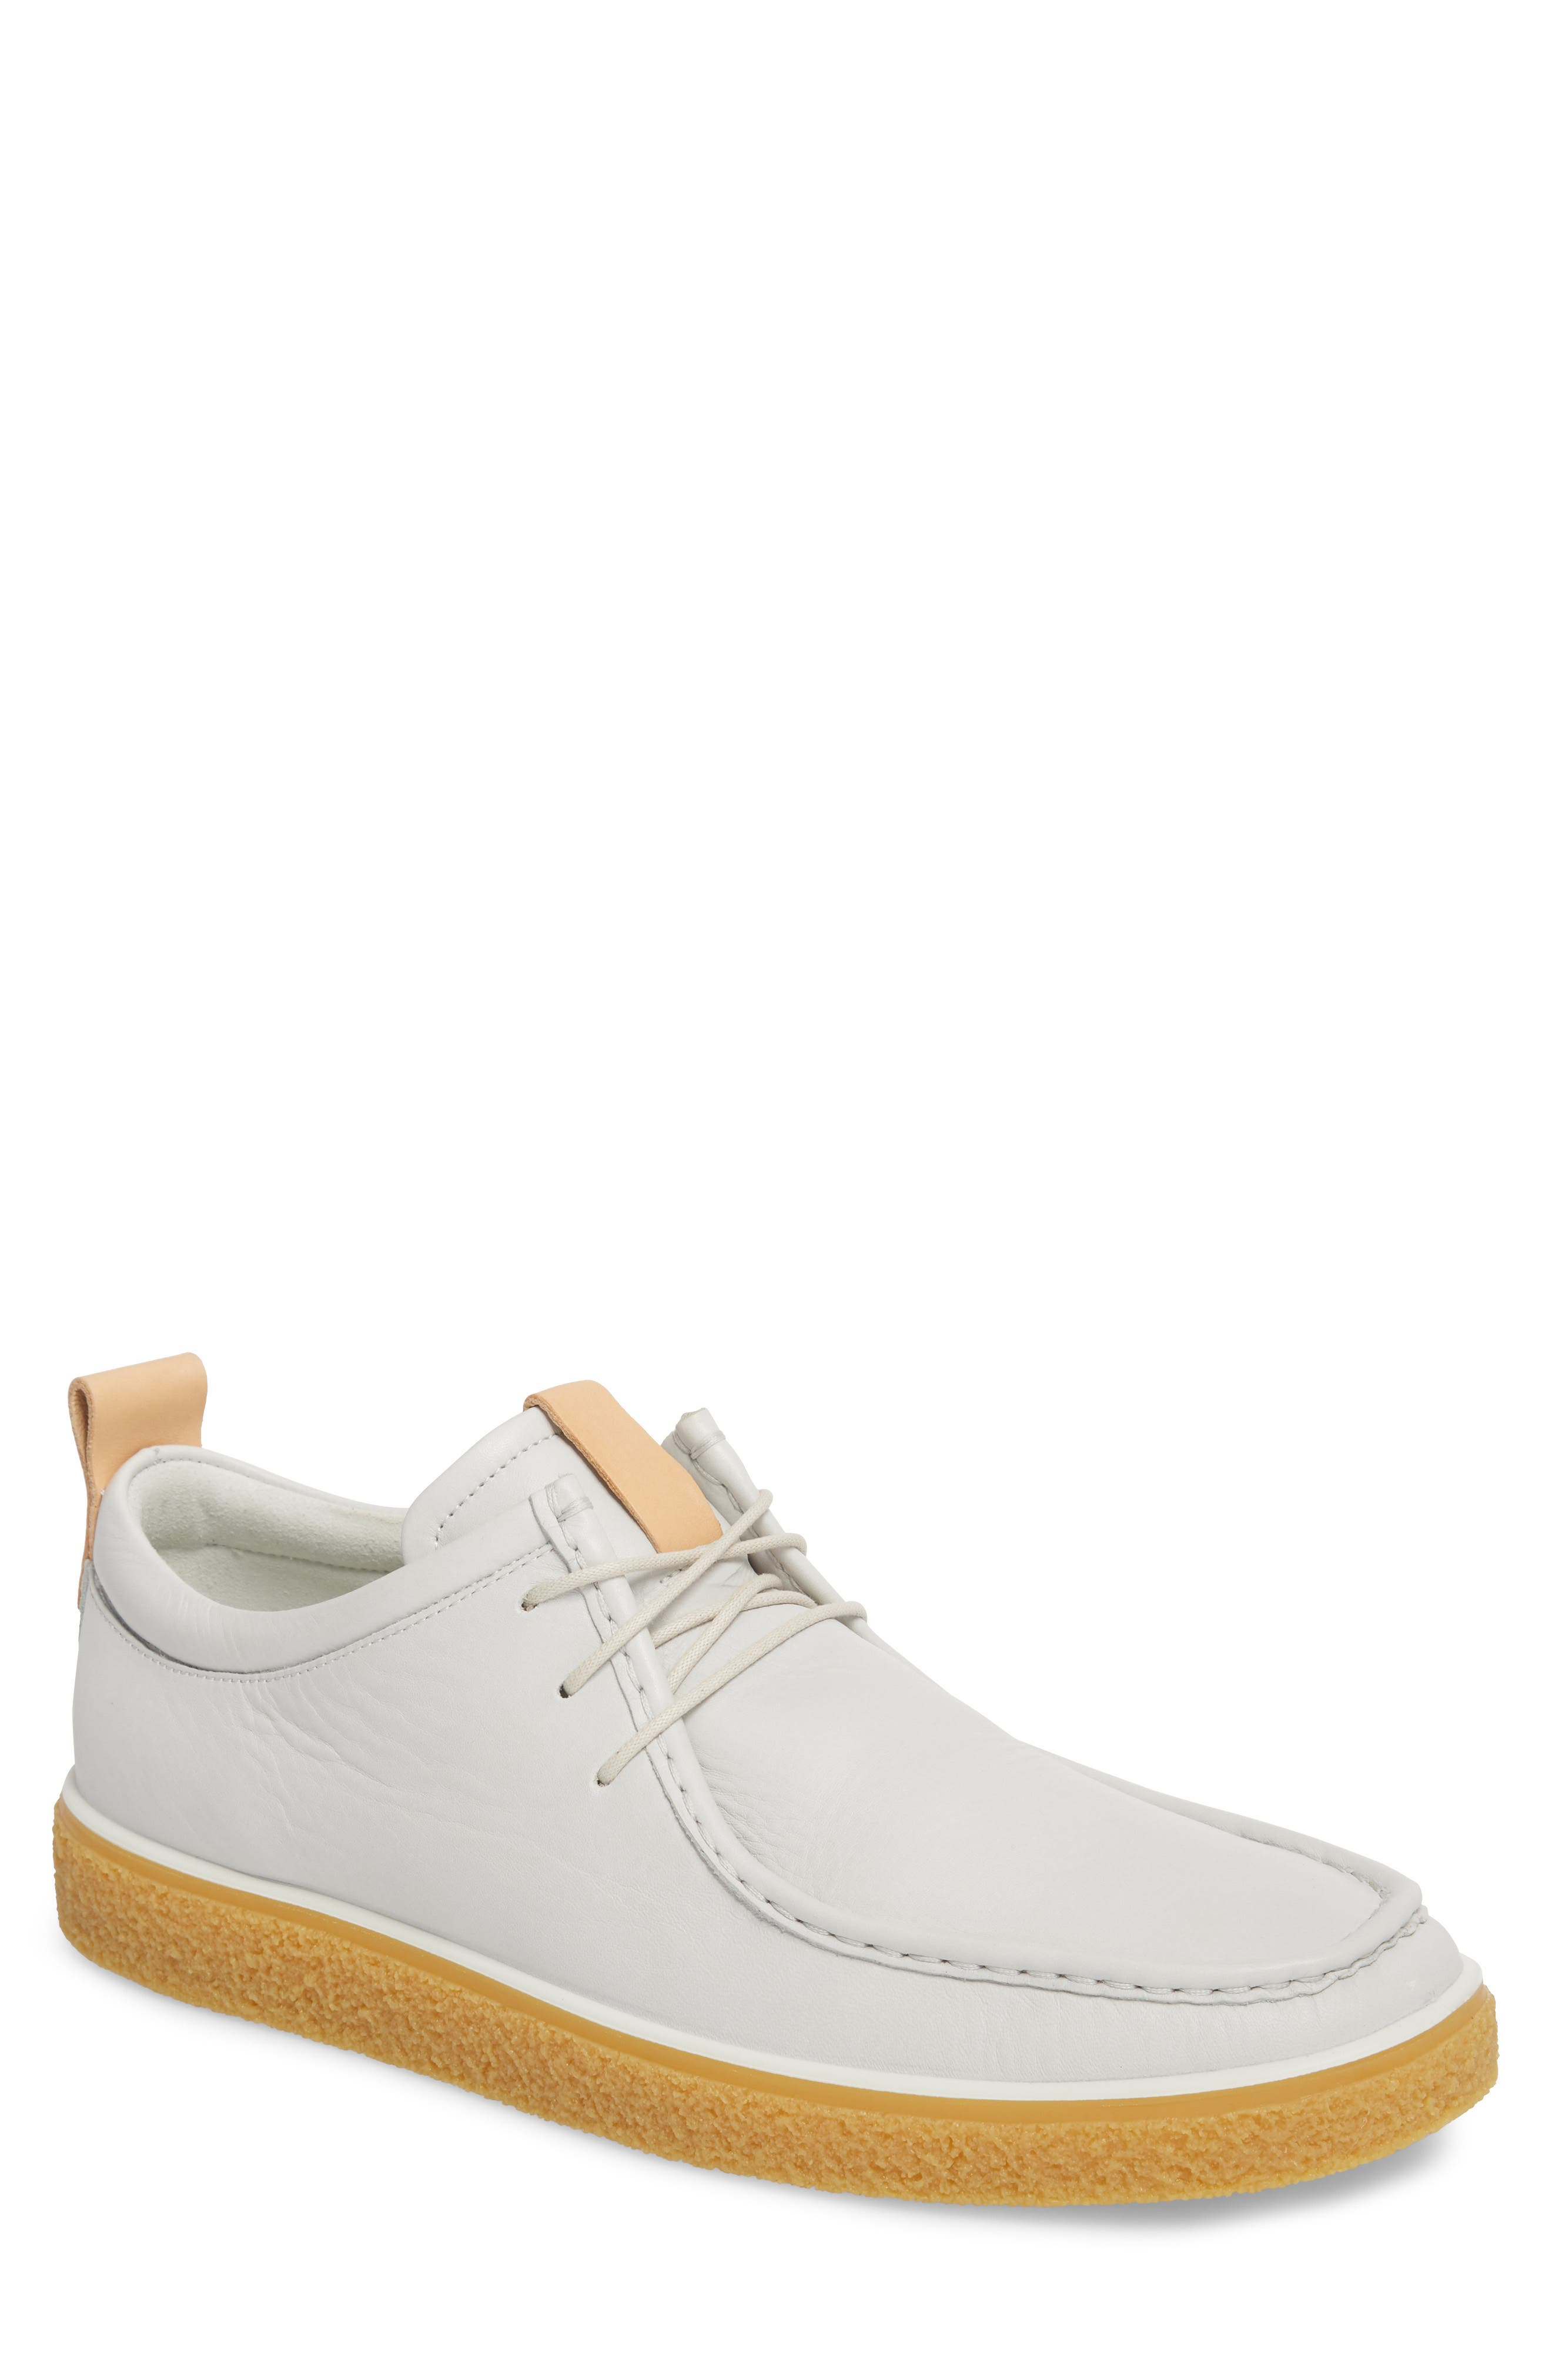 Crepetray Moc Toe Low Chukka Boot,                             Main thumbnail 1, color,                             OFF WHITE LEATHER